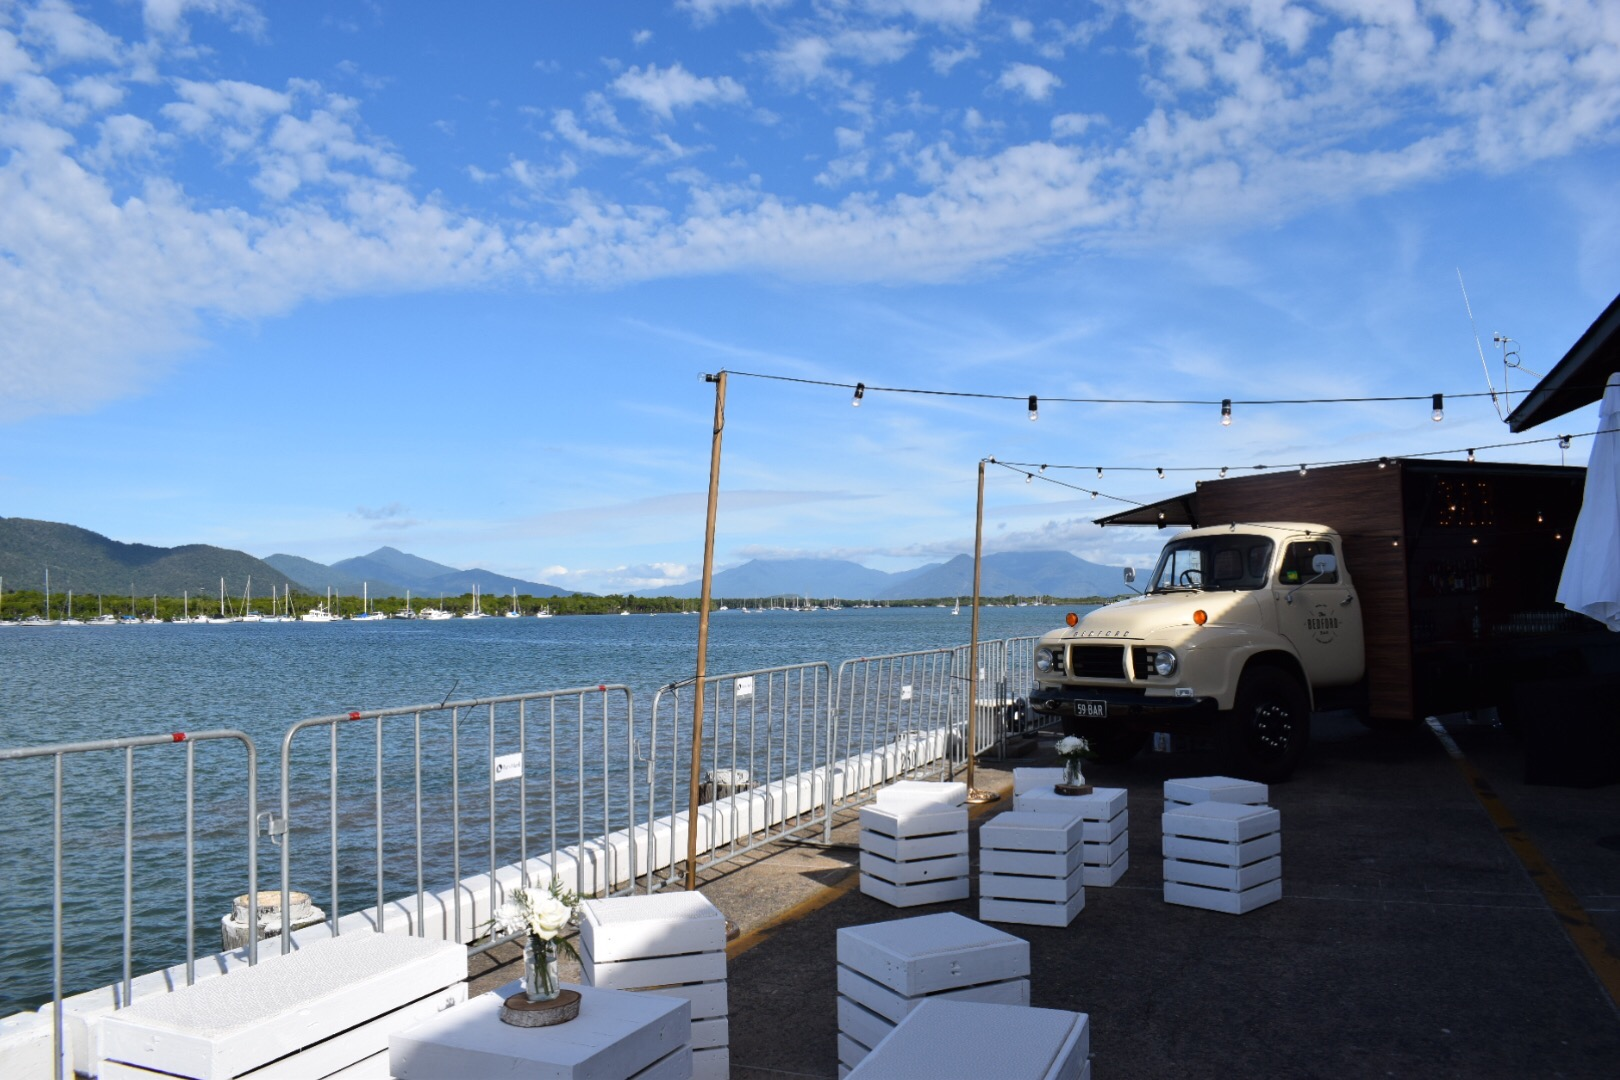 The Bedford Bar at the Cairns Cruise